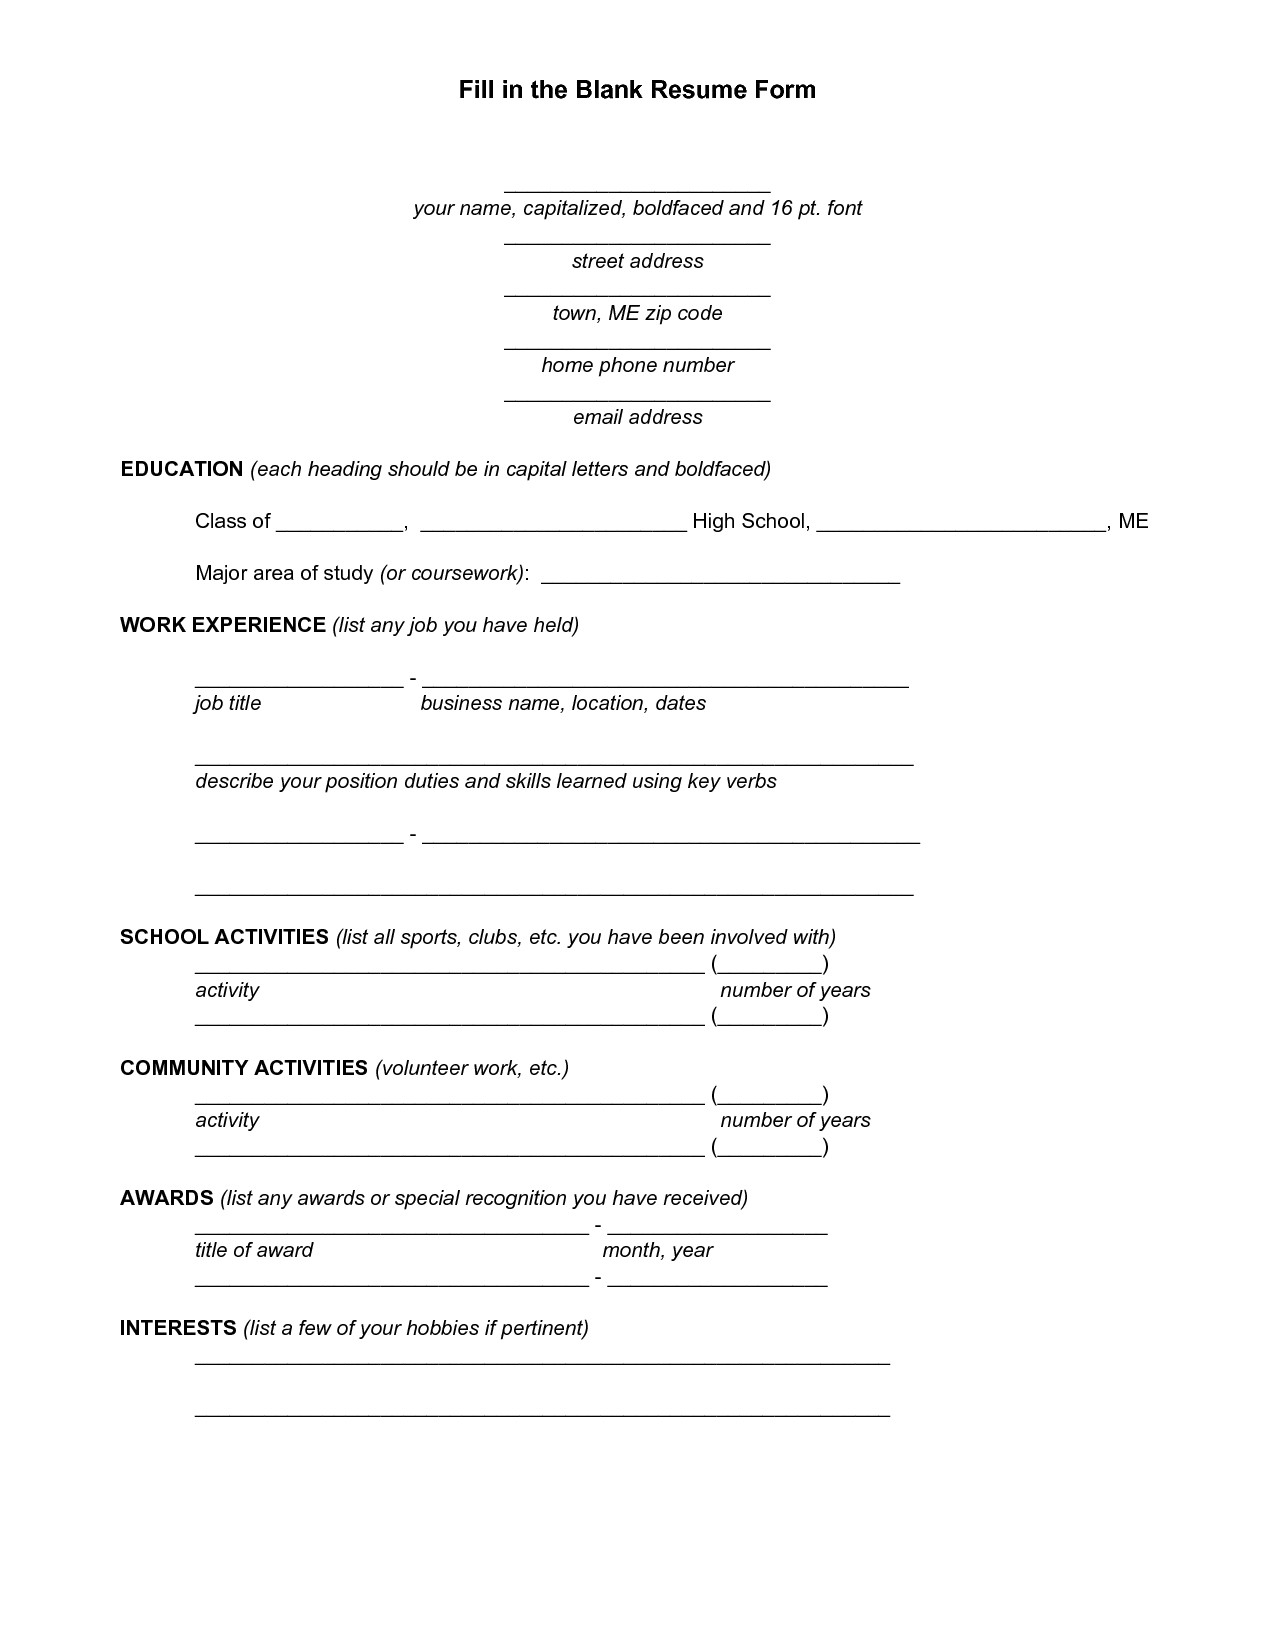 Fill In Resume Template Blank Resume Template for High School Students